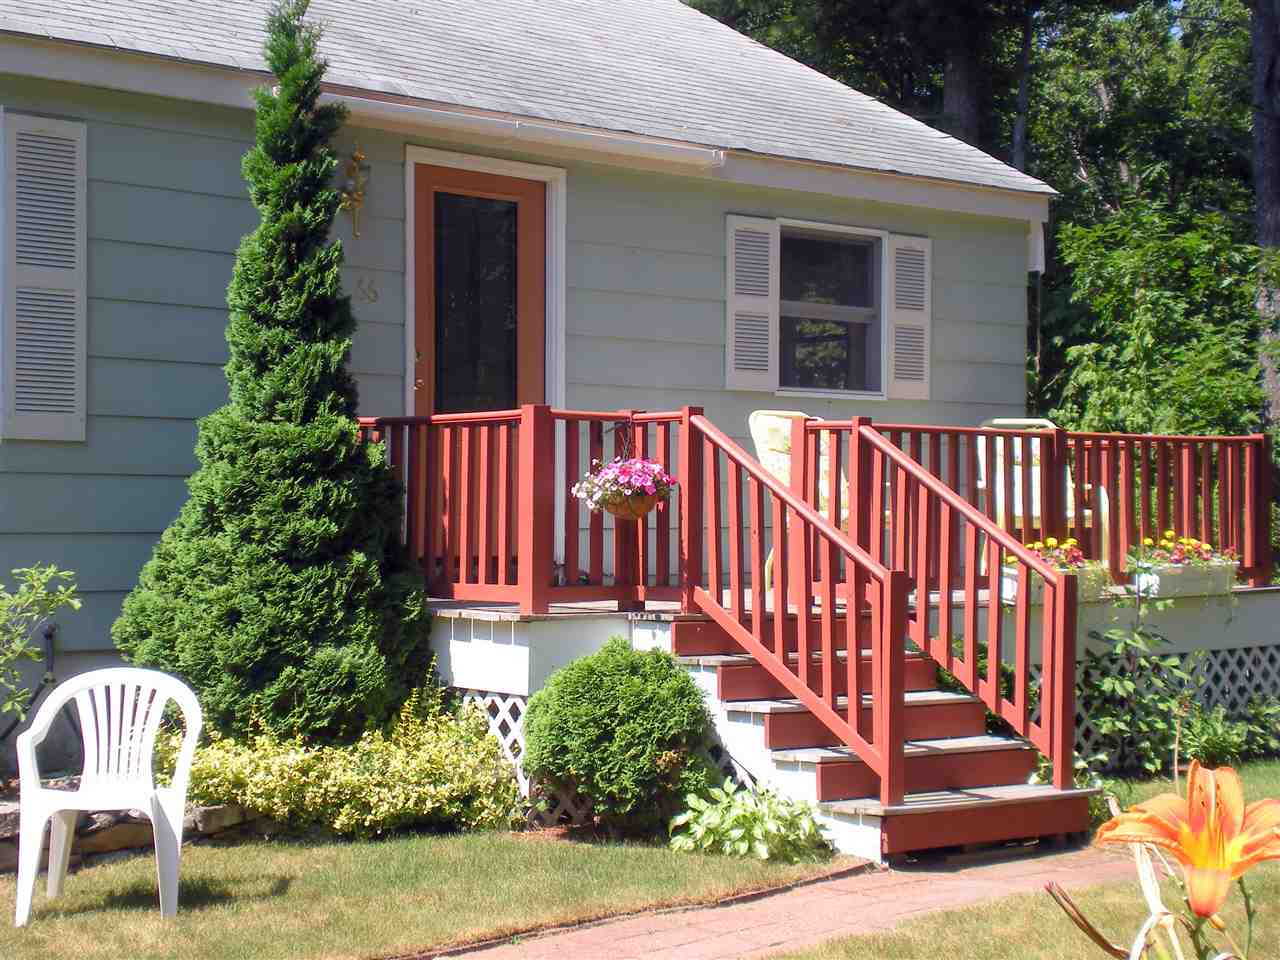 NEW DURHAM NH Home for sale $169,900